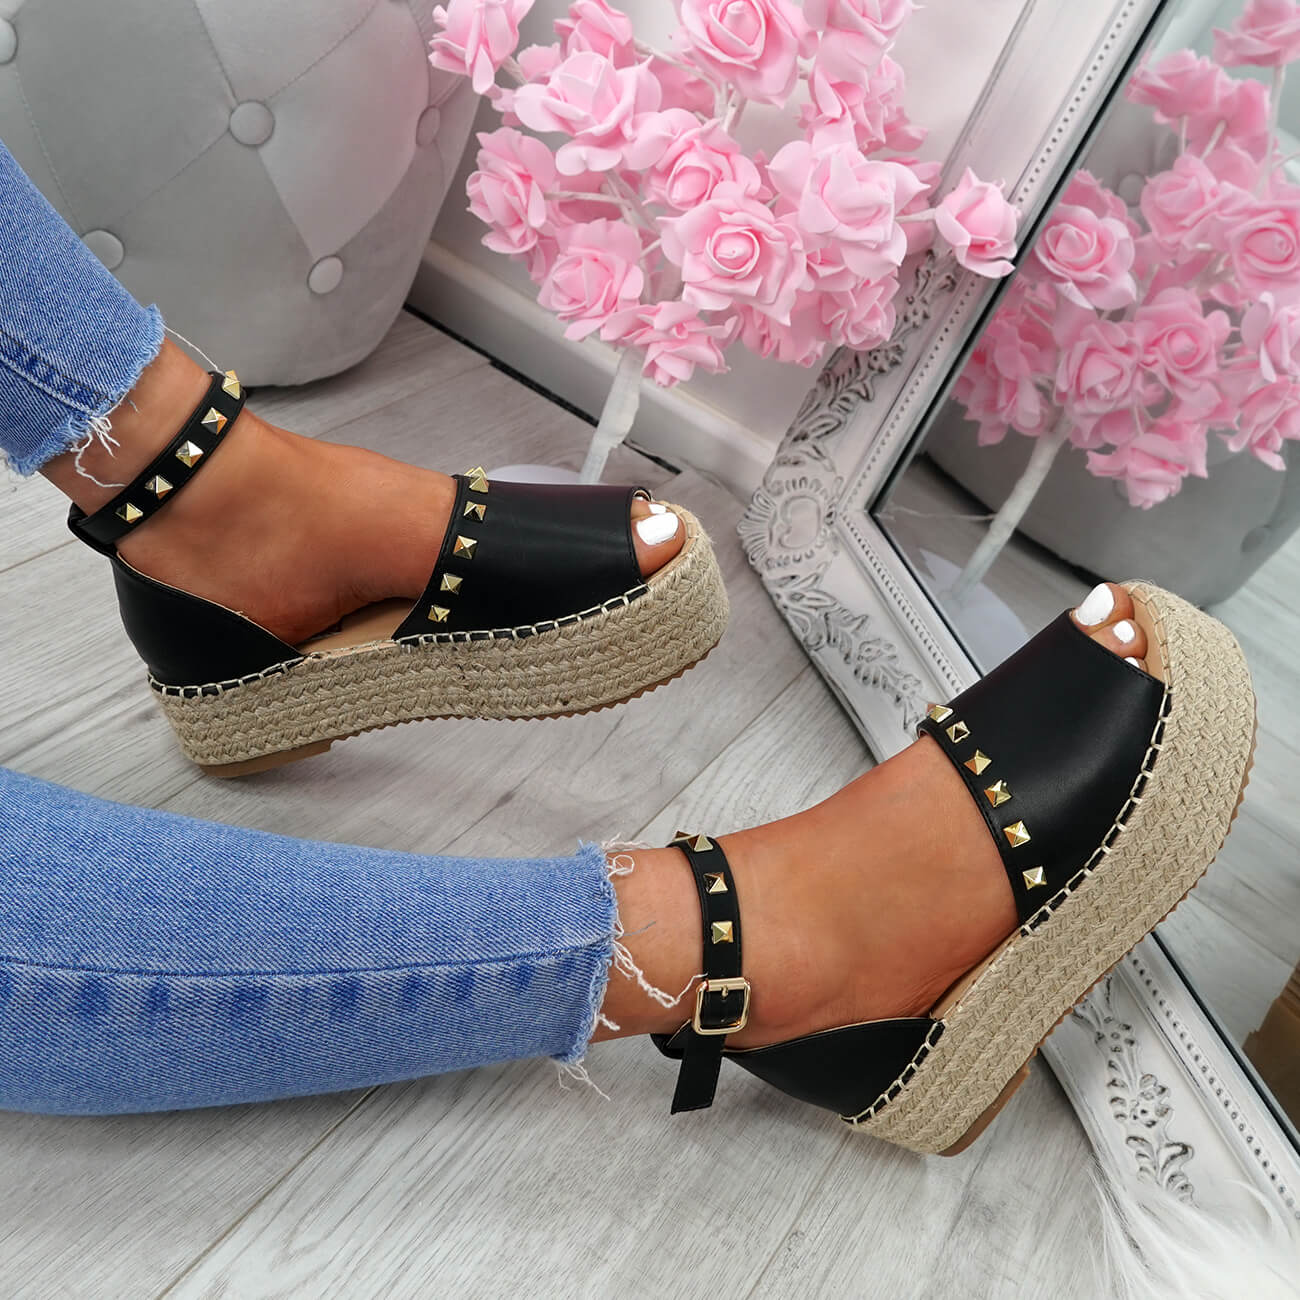 WOMENS-LADIES-ROCK-STUDS-ESPADRILLE-FLATFORM-PLATFORM-SANDALS-CASUAL-SHOES-SIZE thumbnail 6